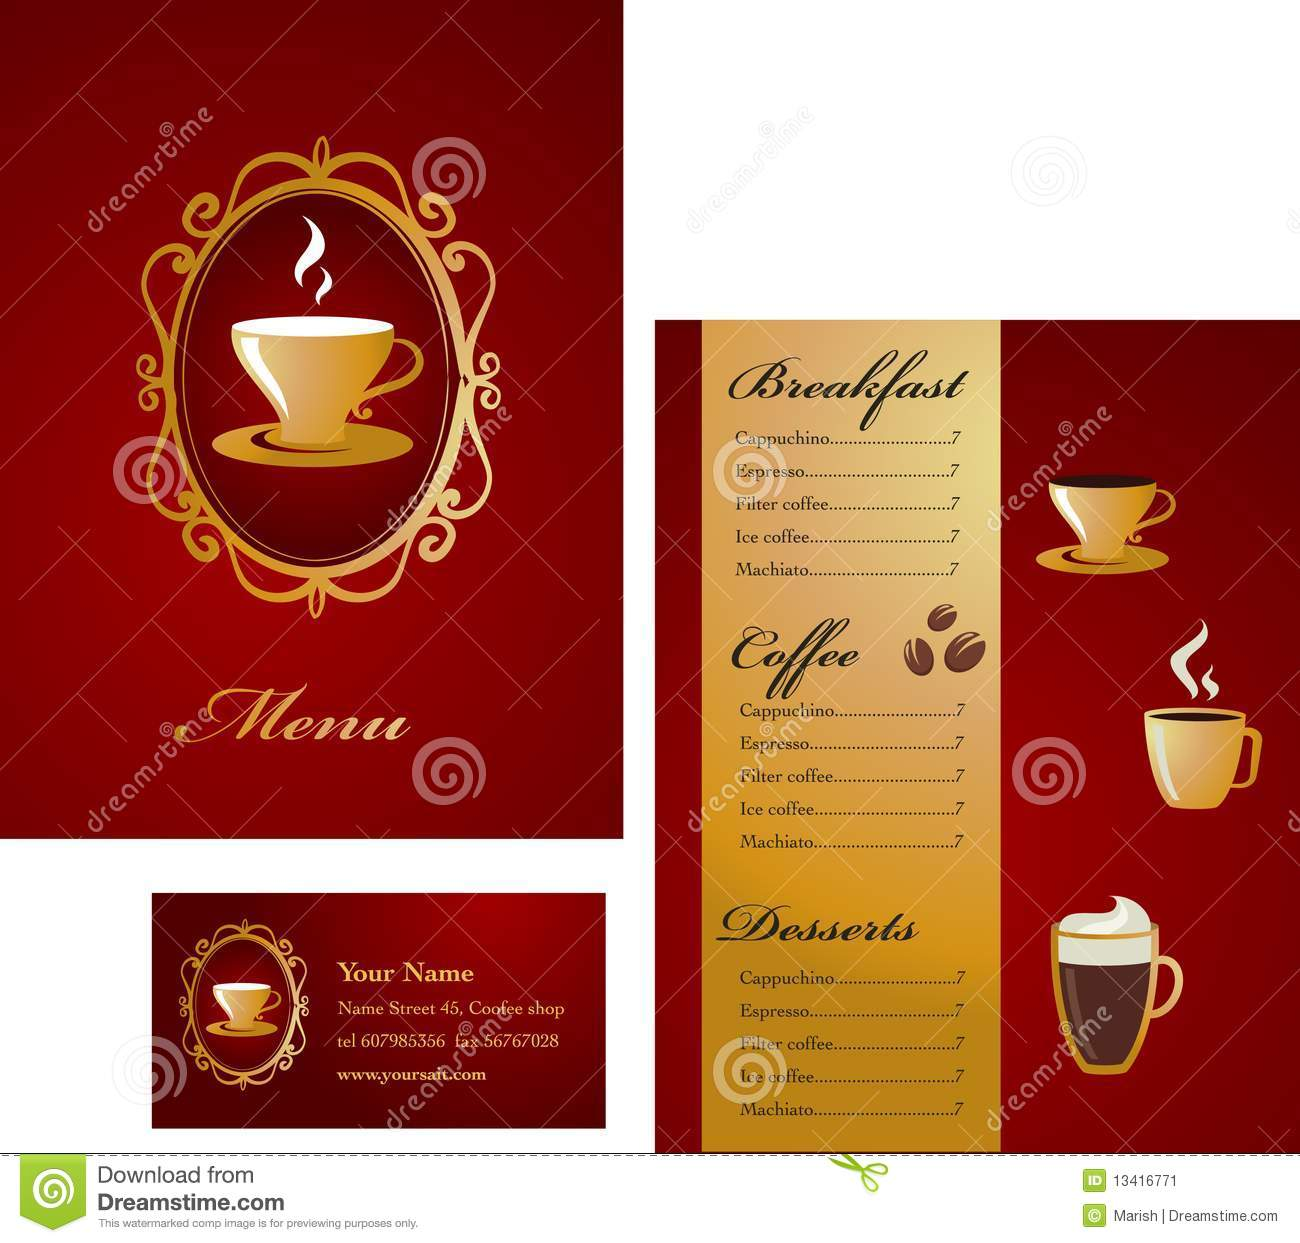 Menu And Business Card Template Design - Coffee Stock Image ...